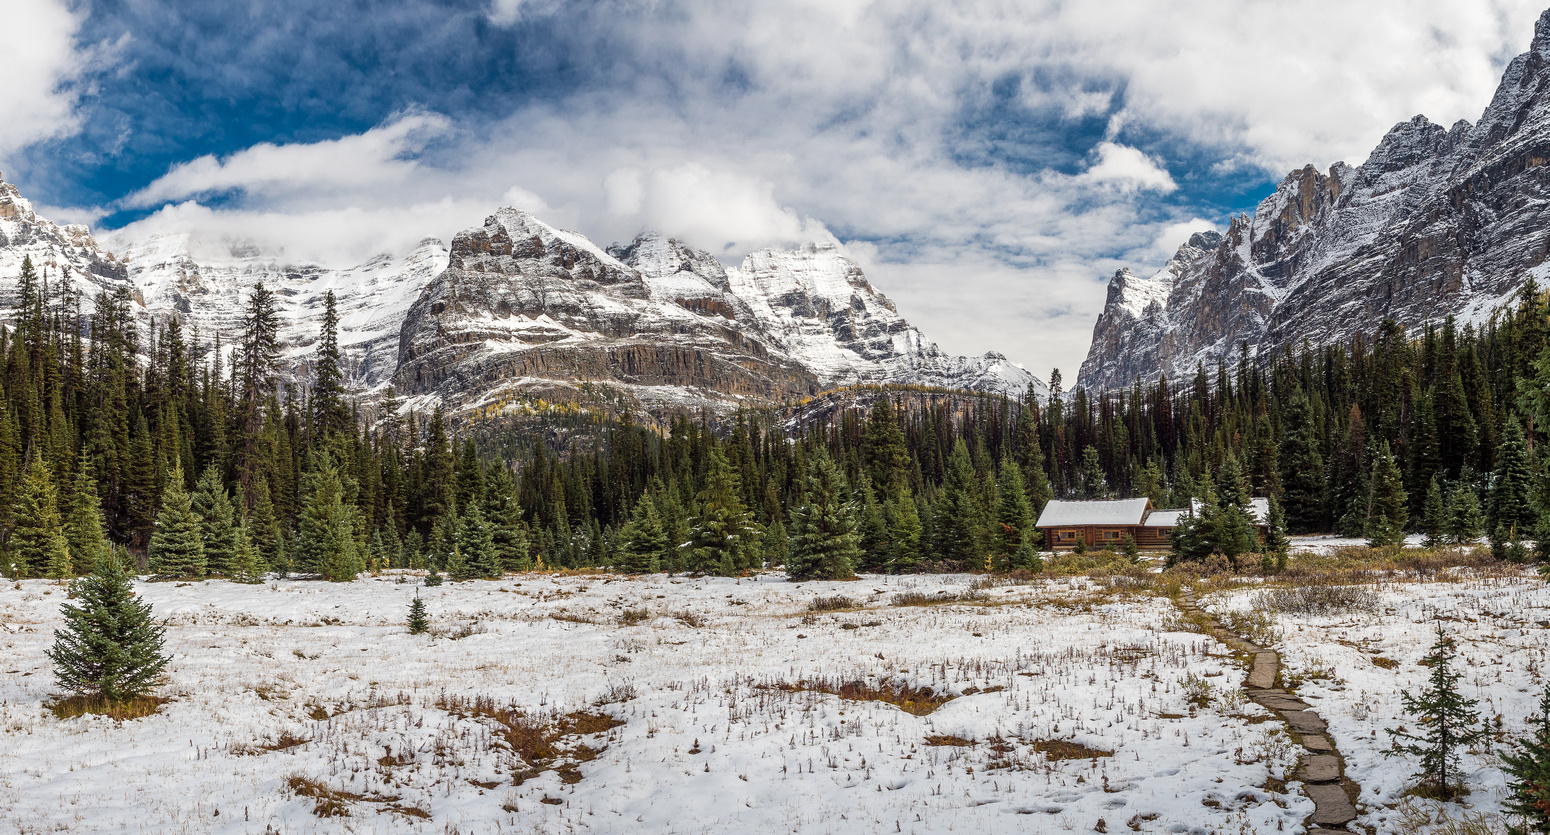 The deluxe Elizabeth Parker ACC Hut is certainly situated in a gorgeous area of the Canadian Rockies!